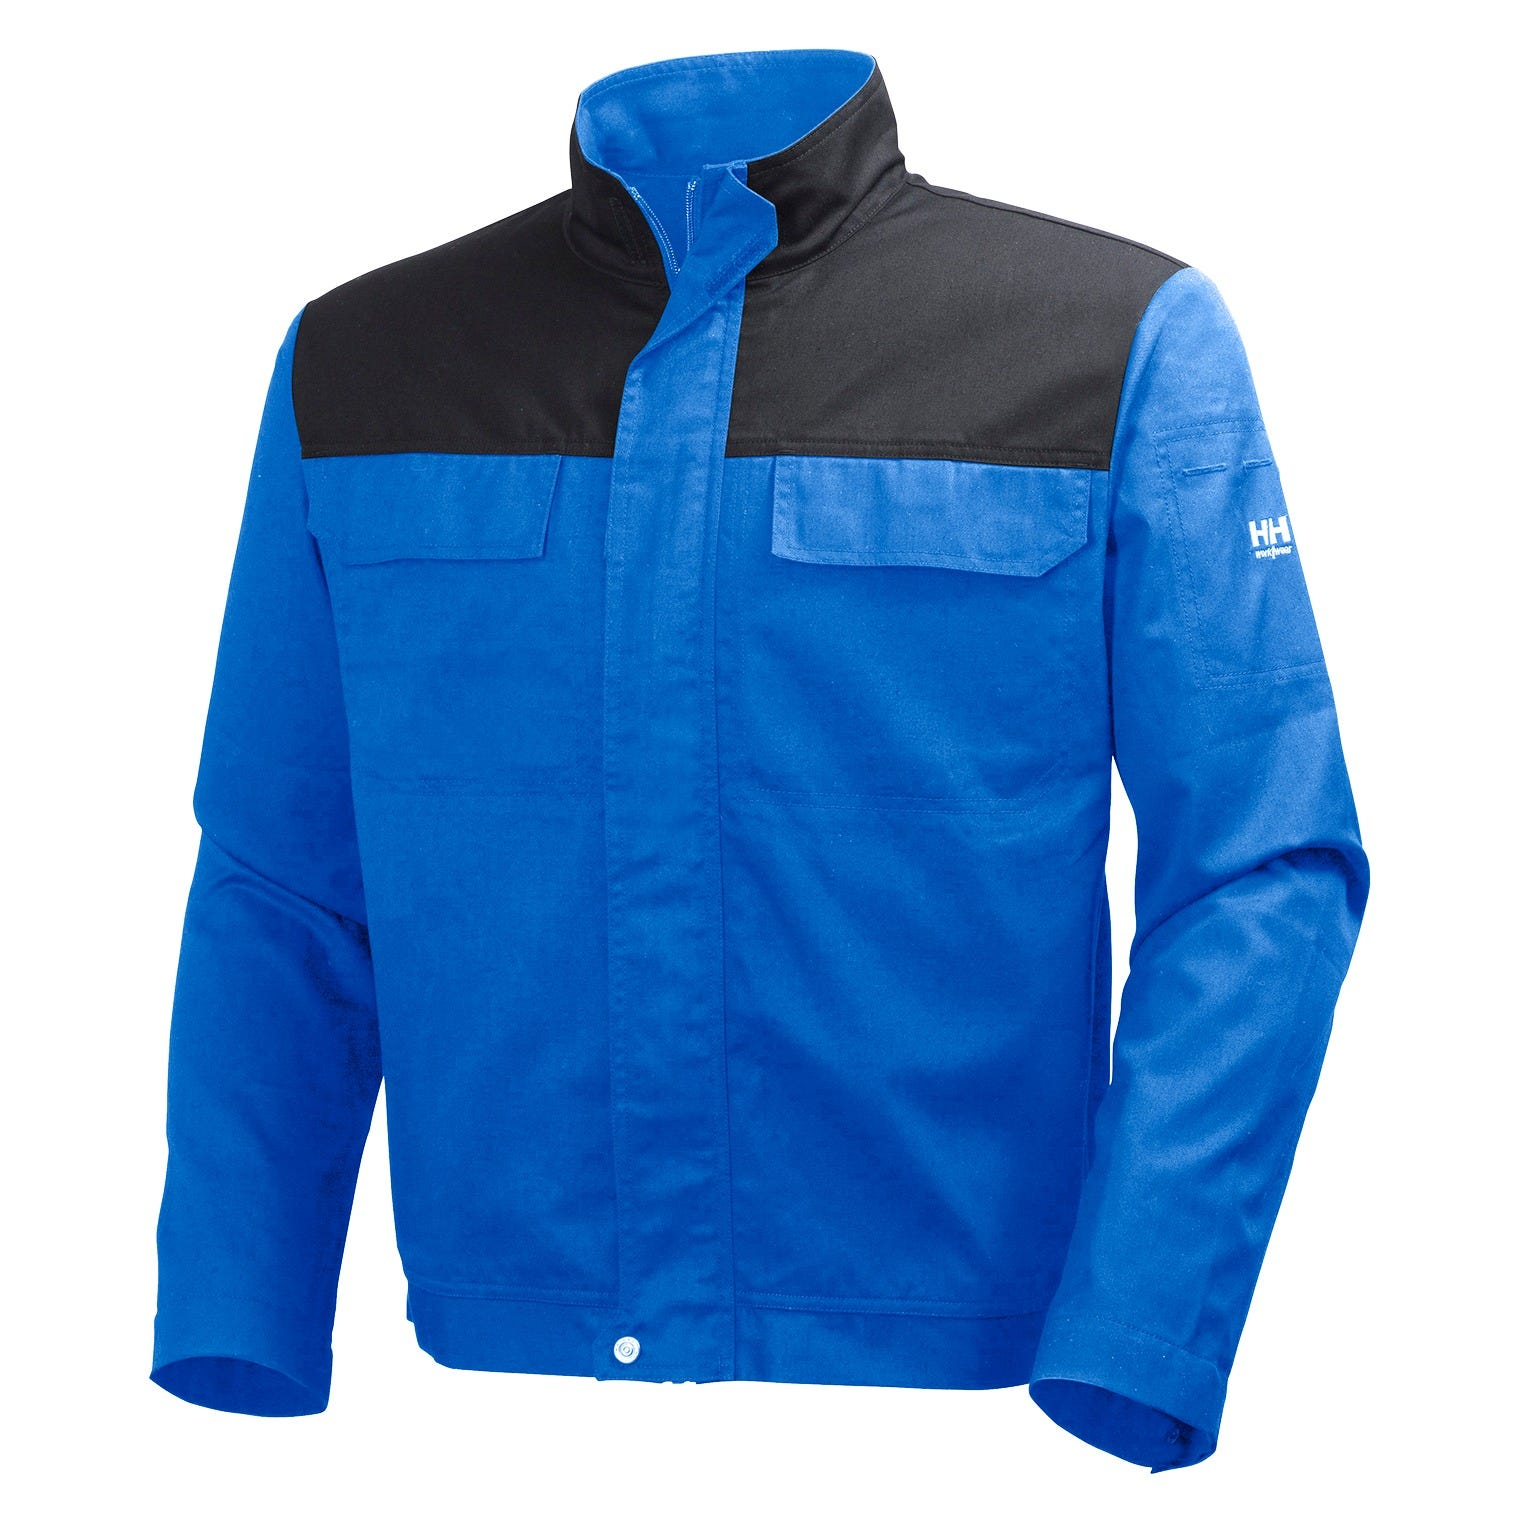 Helly Hansen Workwear Mens Sheffield Industrial Jacket Helly Hansen Men/'s Workwear 76167